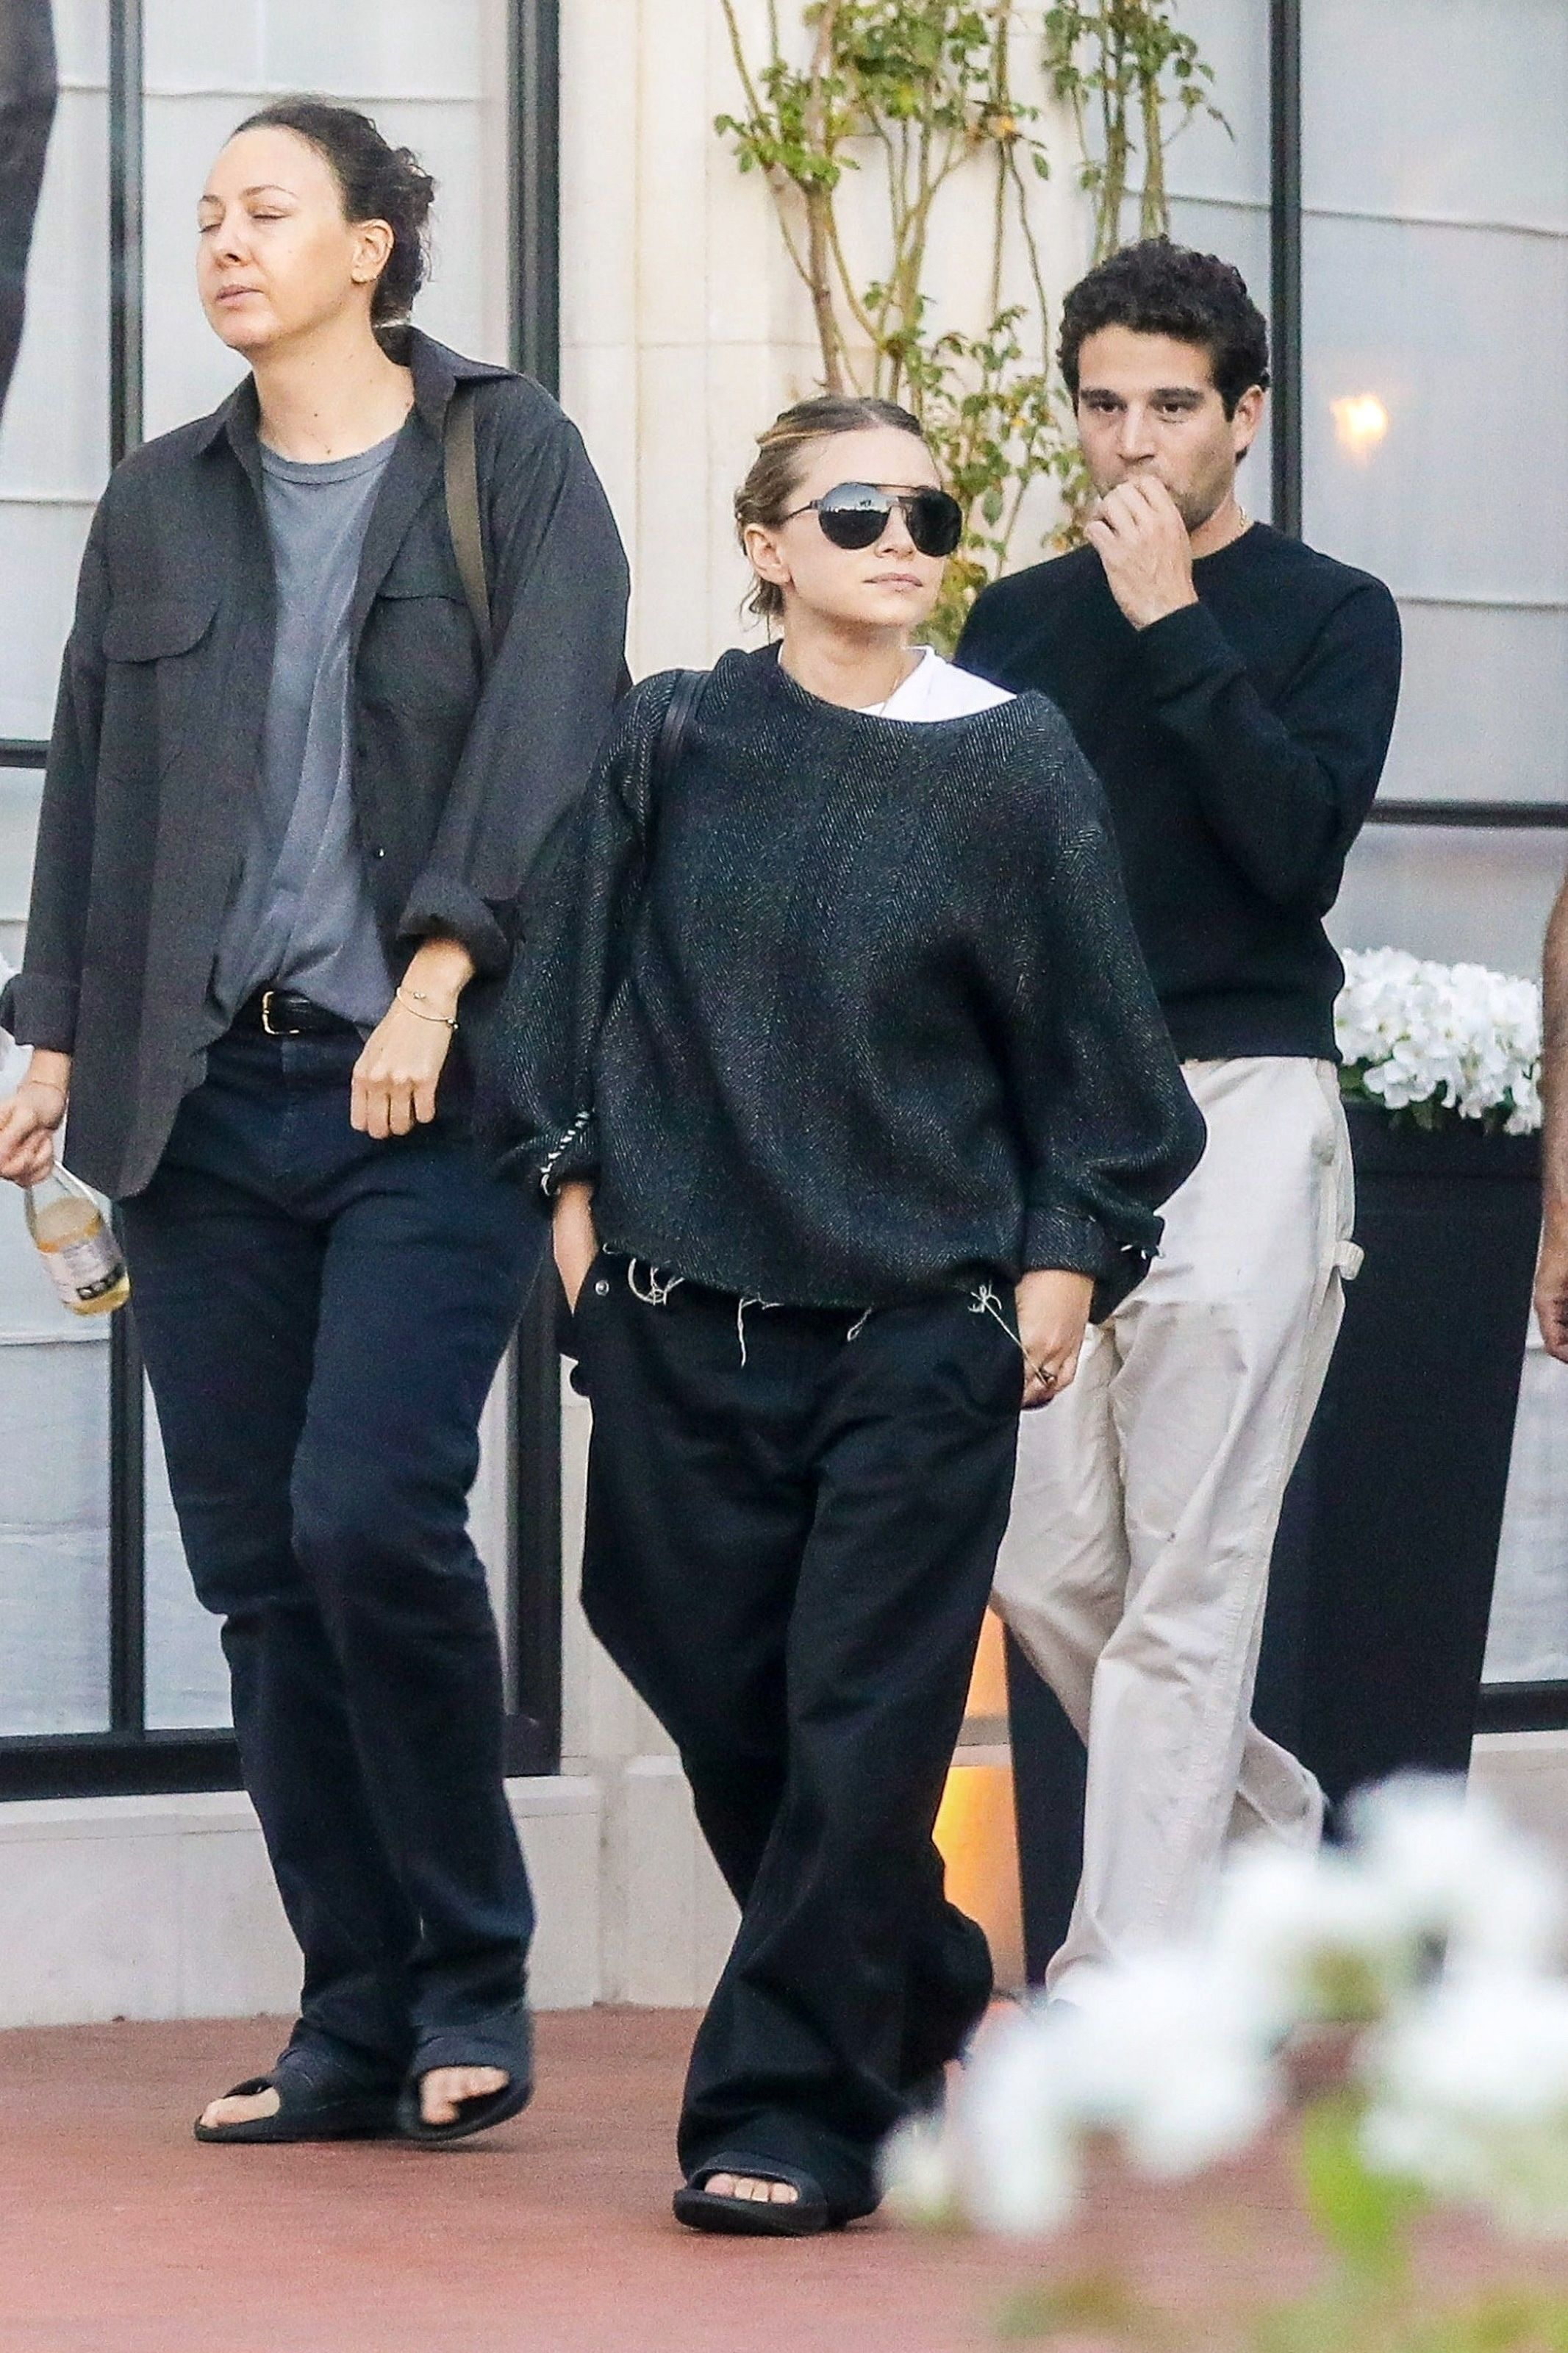 Wie is Ashley Olsen dating WDW 23-jarige dating 38 jaar oud